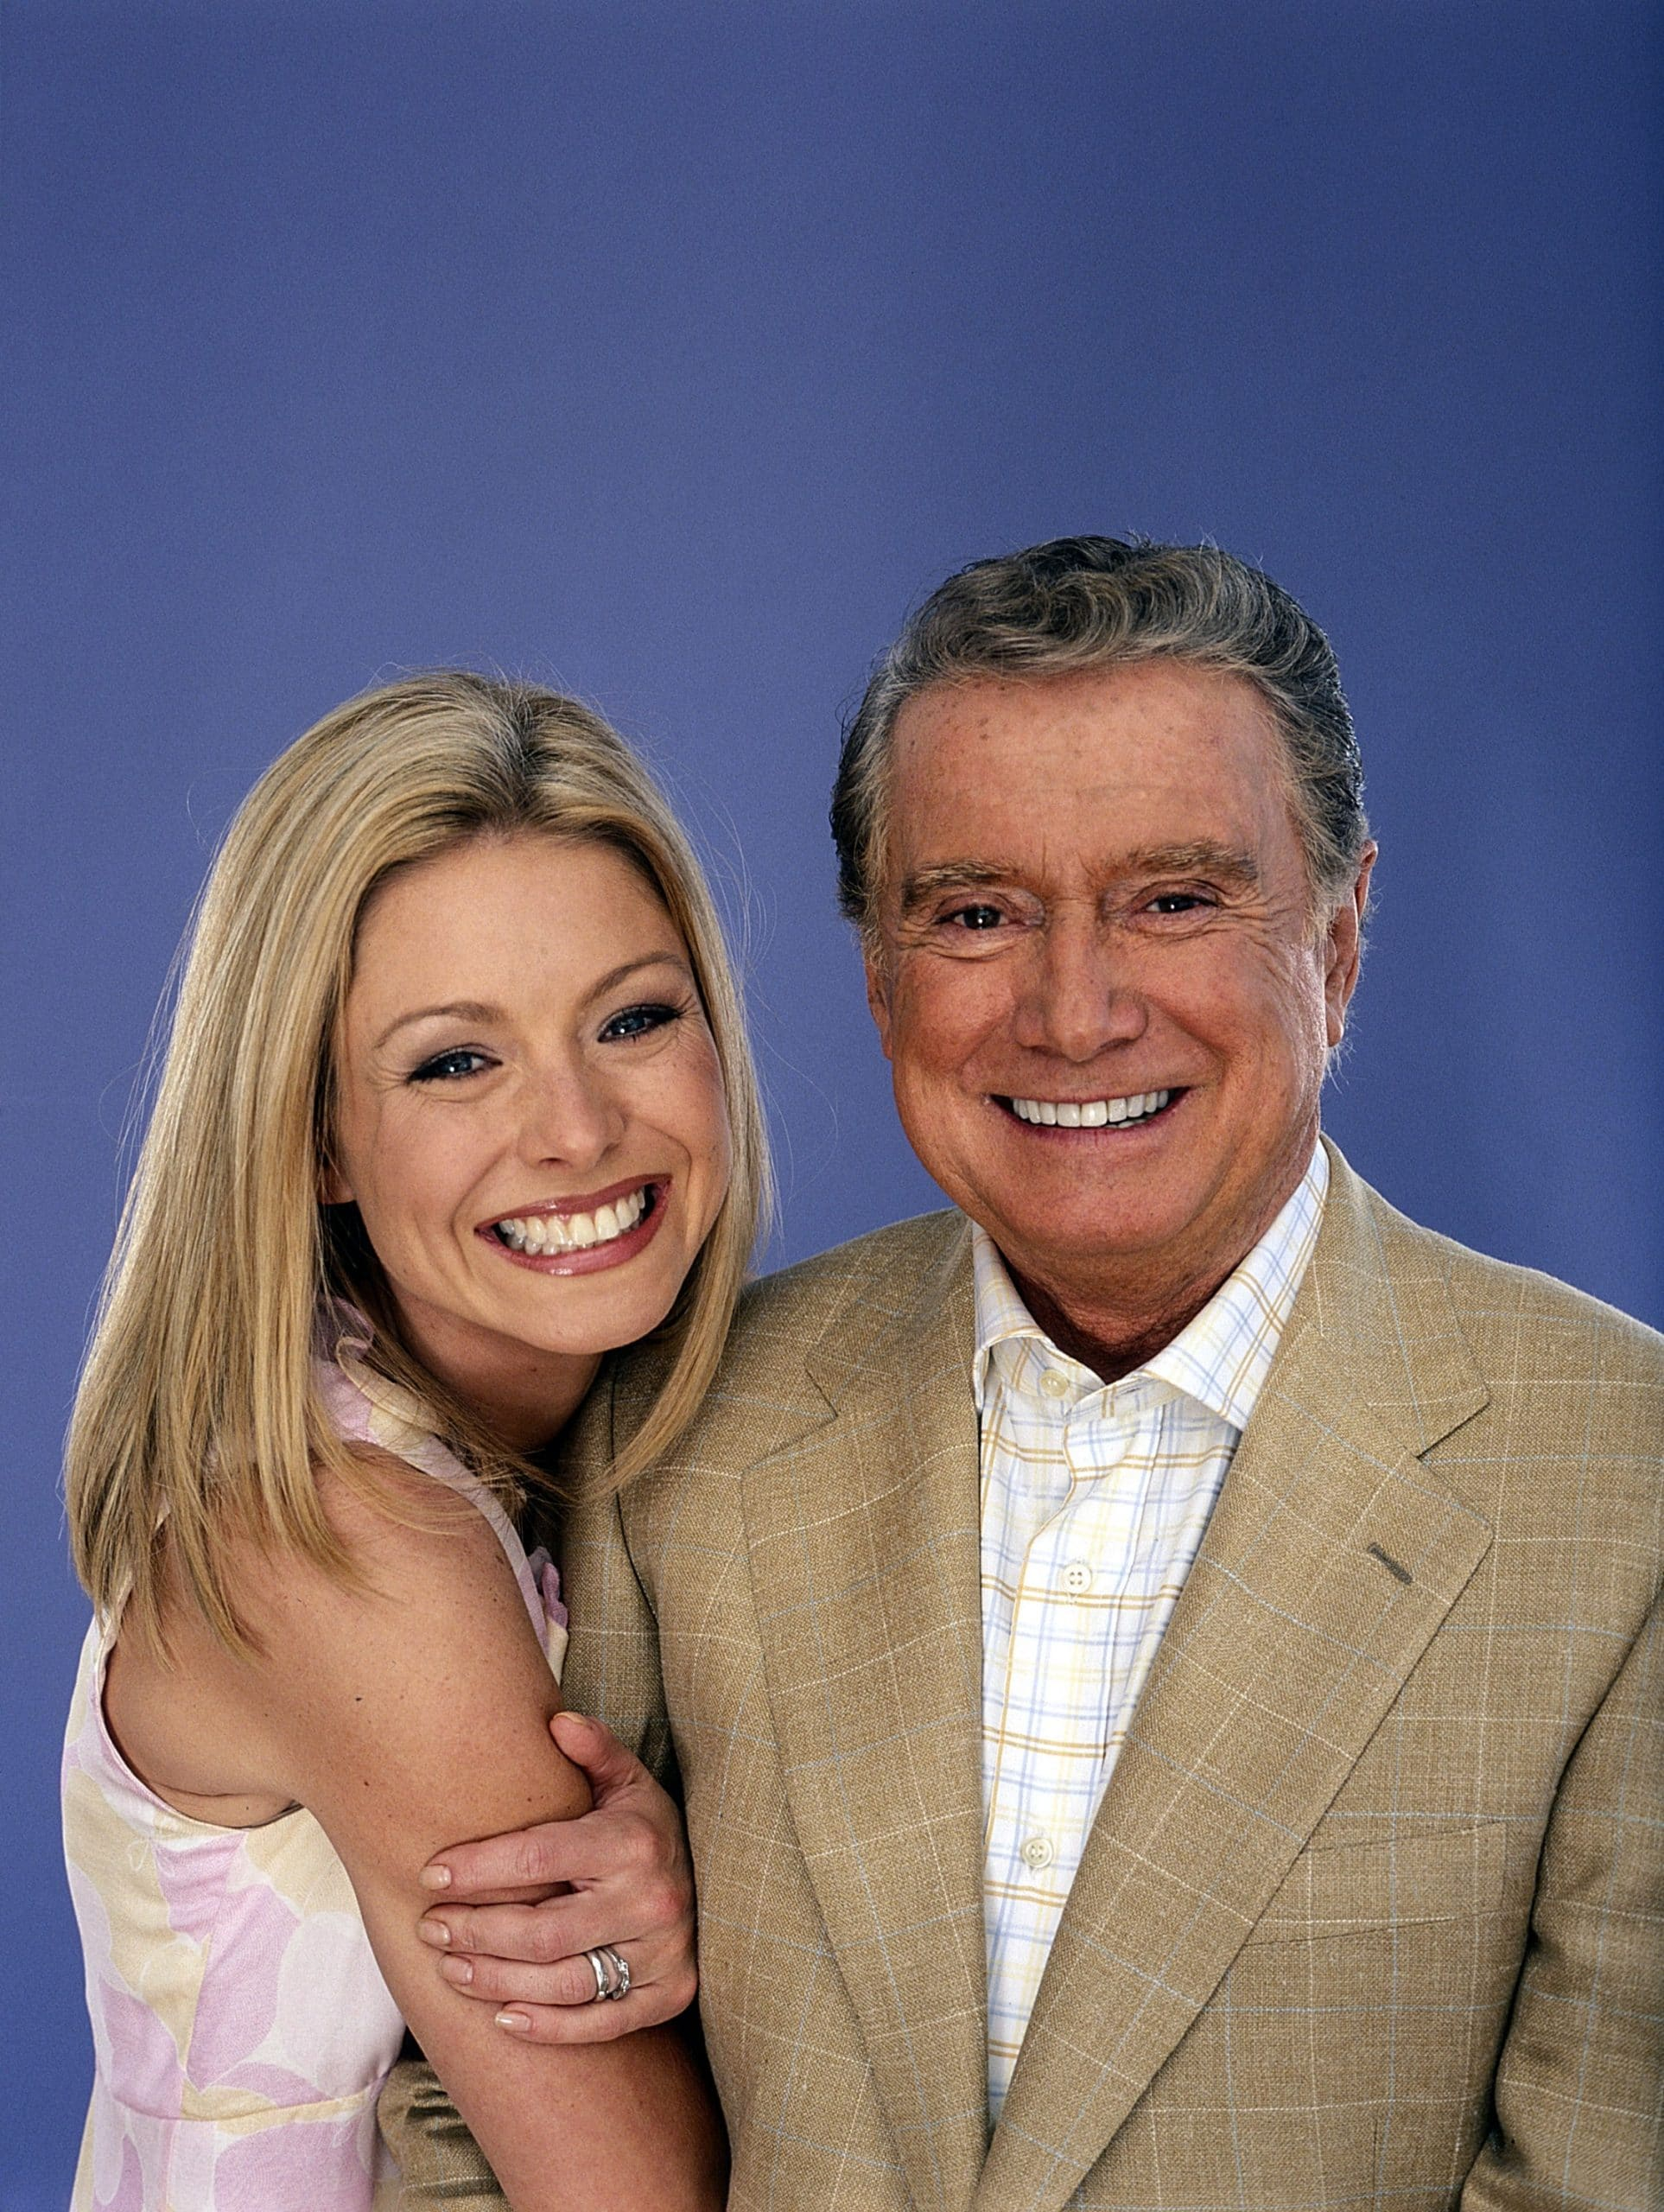 LIVE WITH REGIS AND KELLY, from left: Kelly Ripa, Regis Philbin